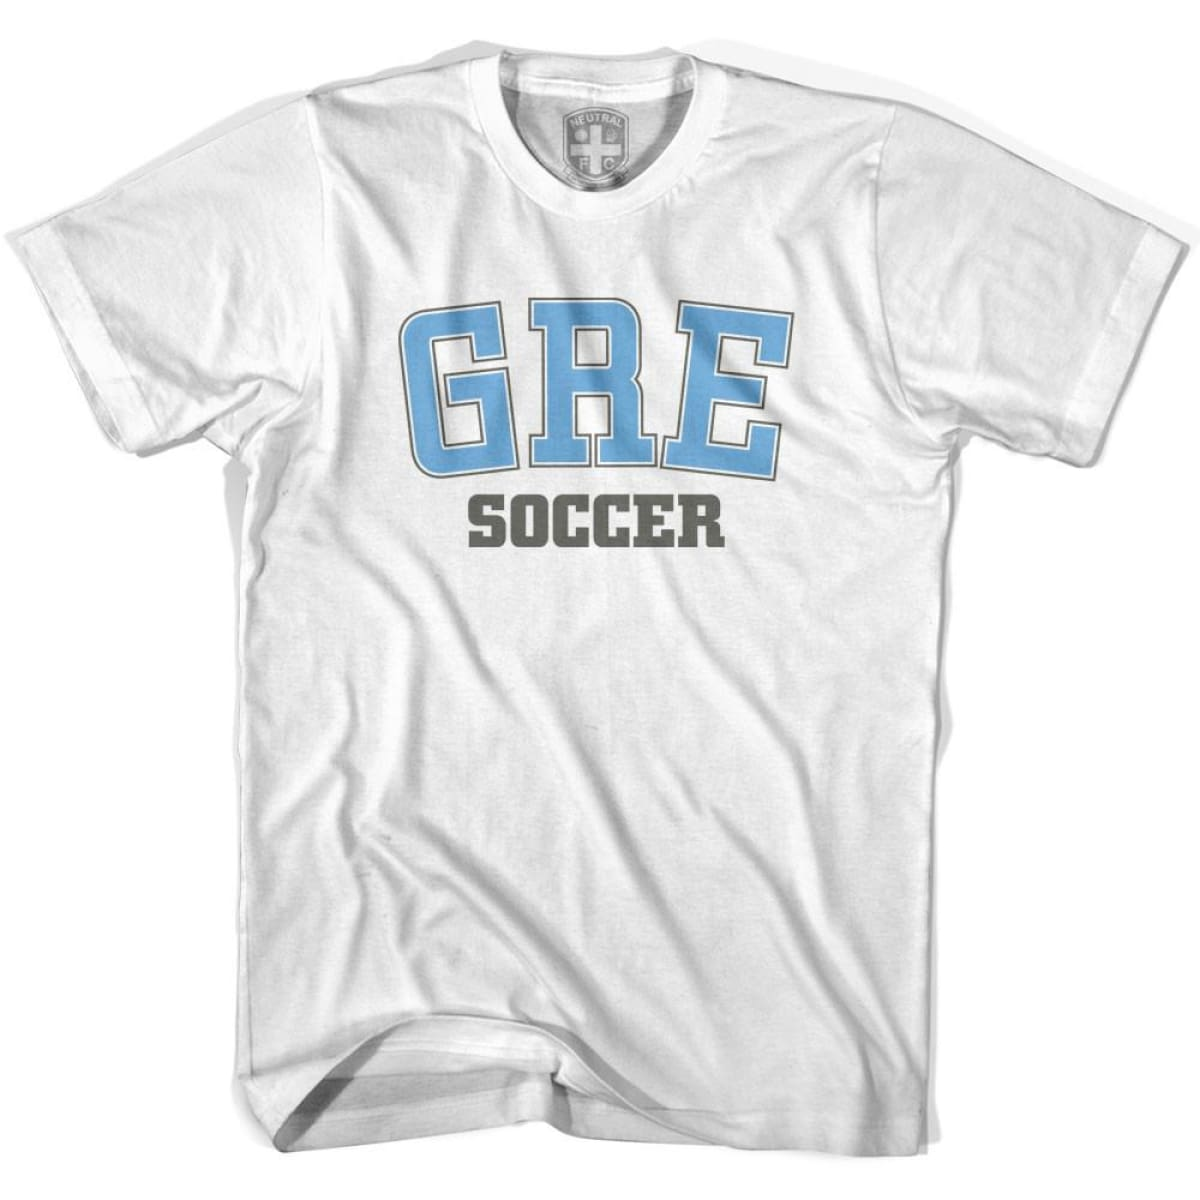 Greece GRE Soccer Country Code T-shirt - White / Youth X-Small - Ultras Soccer T-shirts